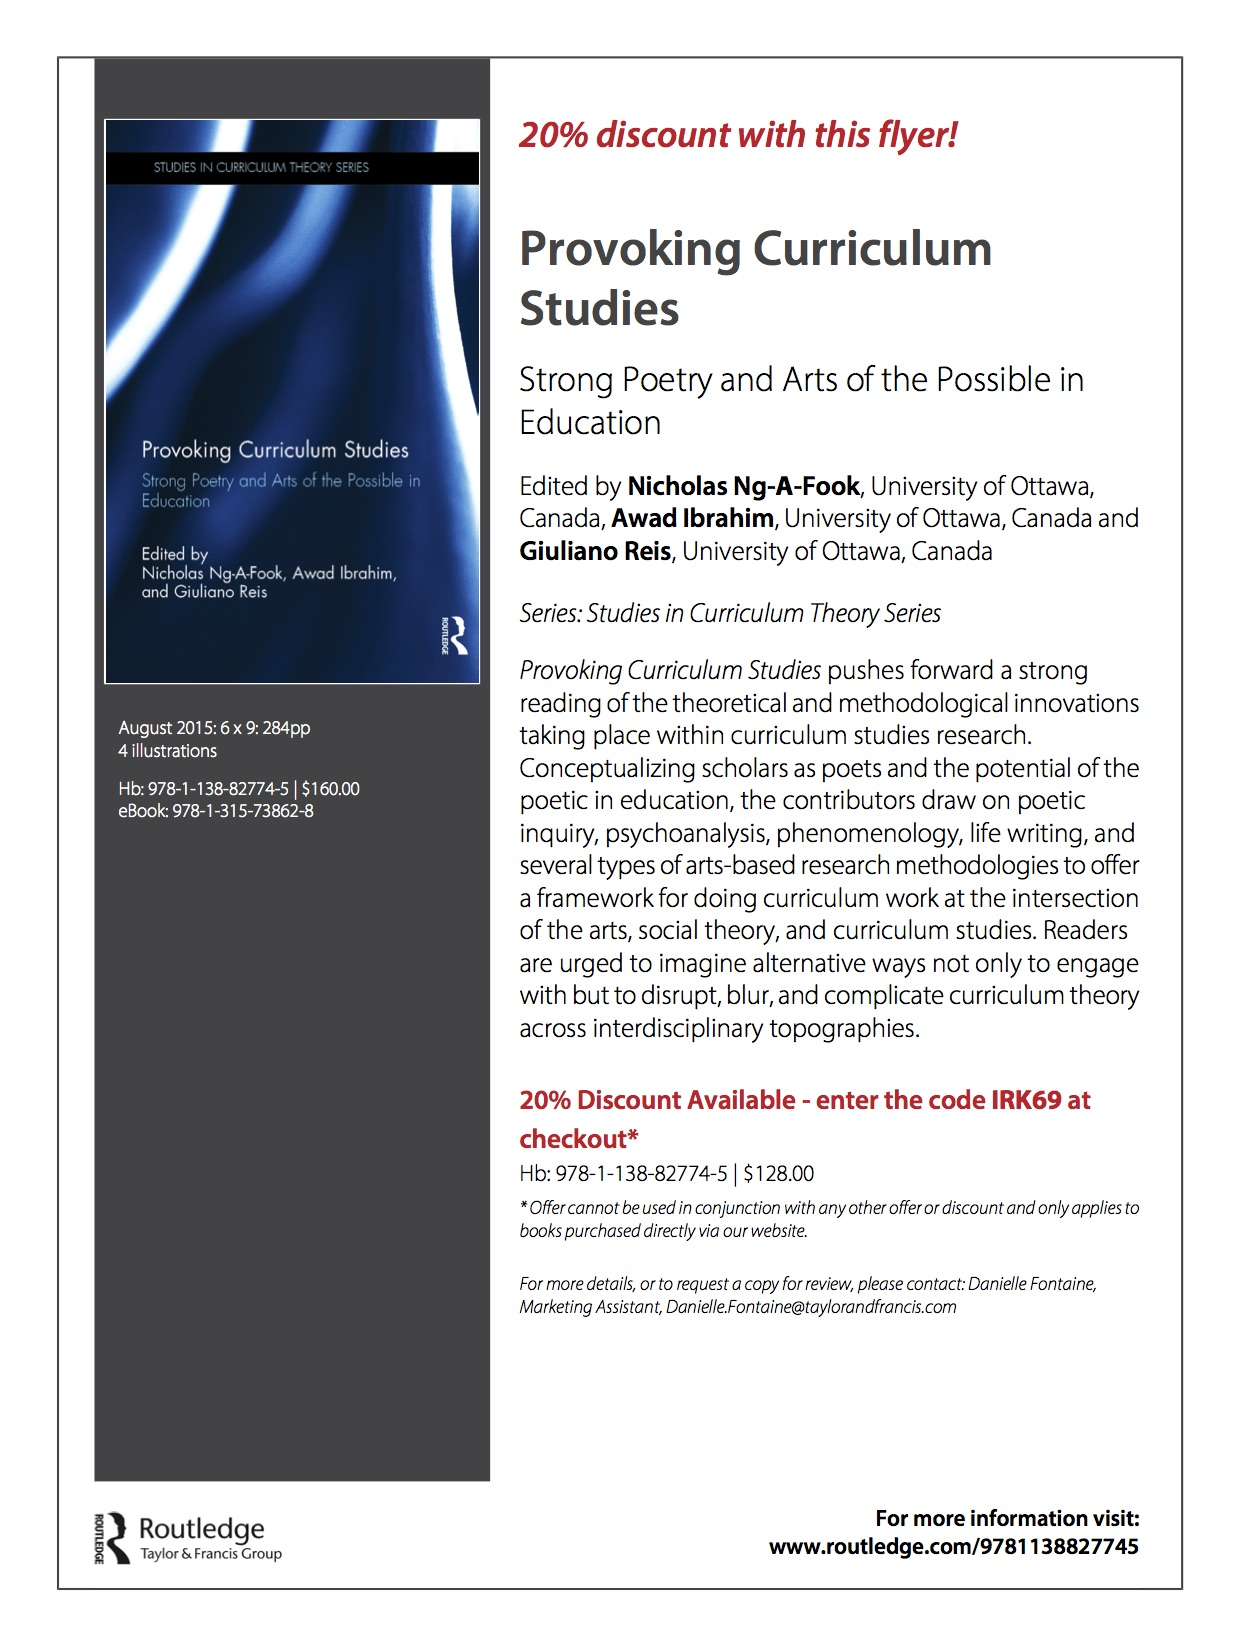 Provoking Curriculum Studies Flyer 2